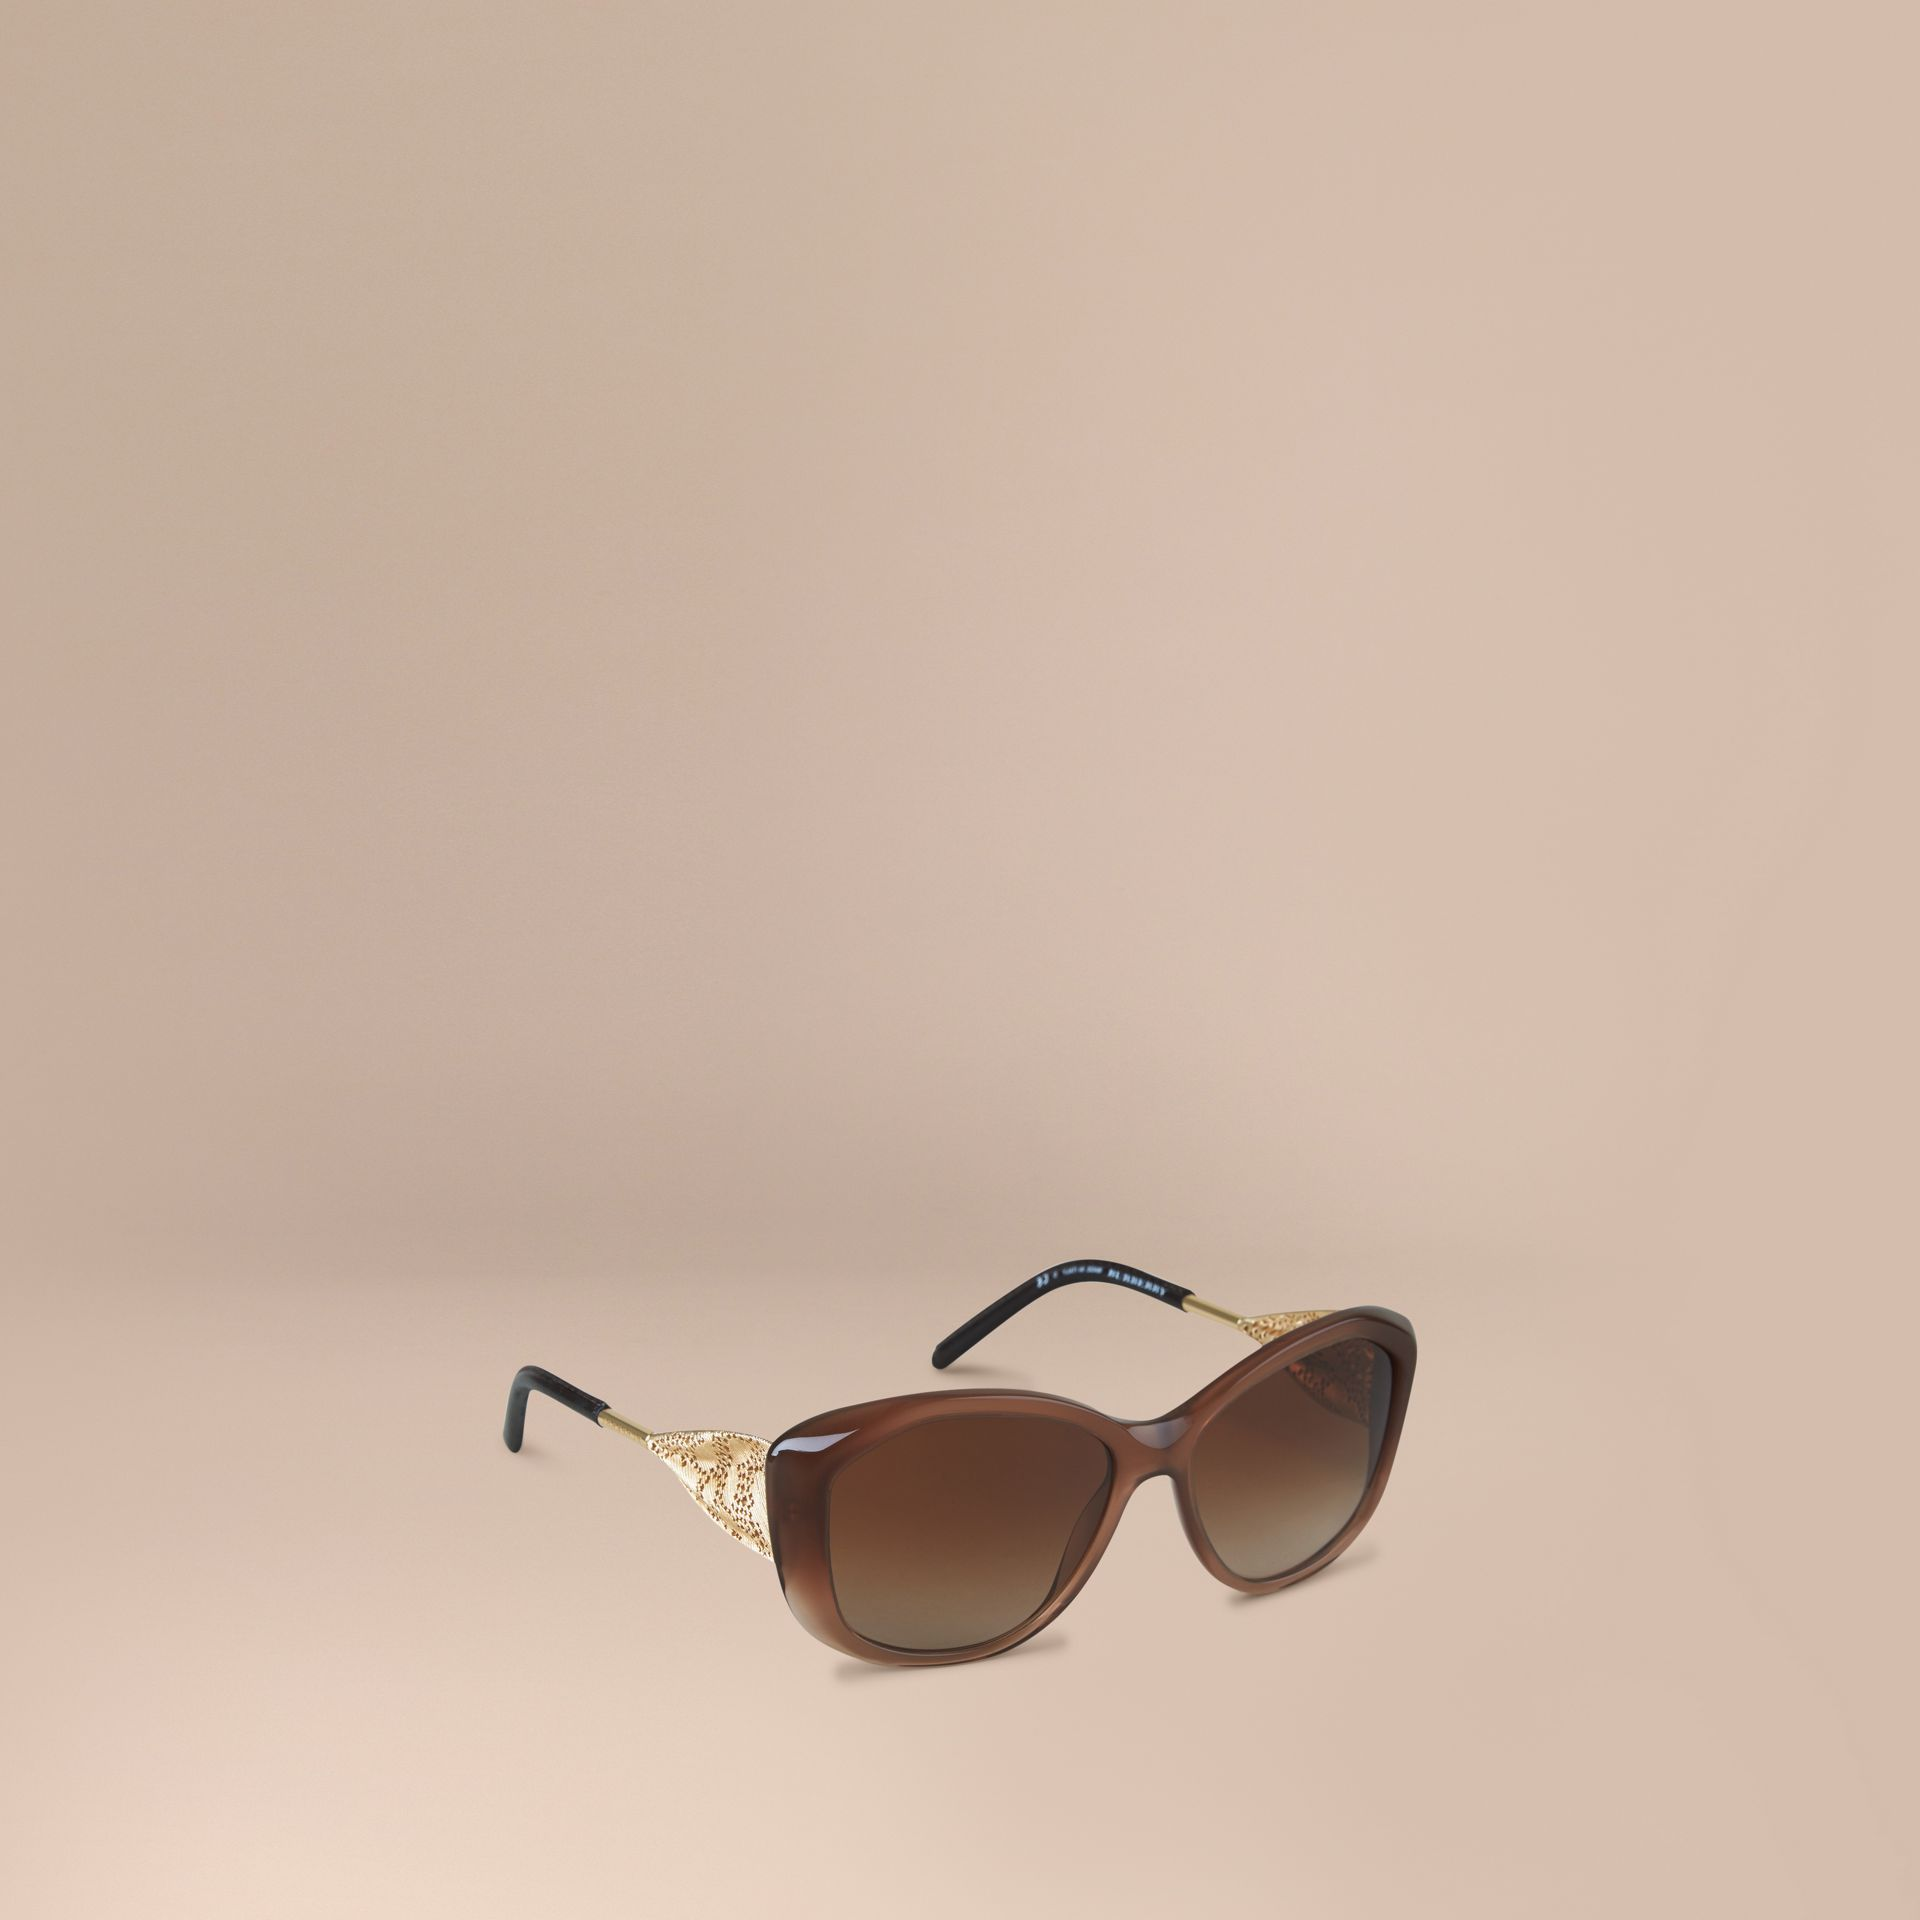 Gabardine Lace Collection Square Frame Sunglasses in Dark Amber - gallery image 1